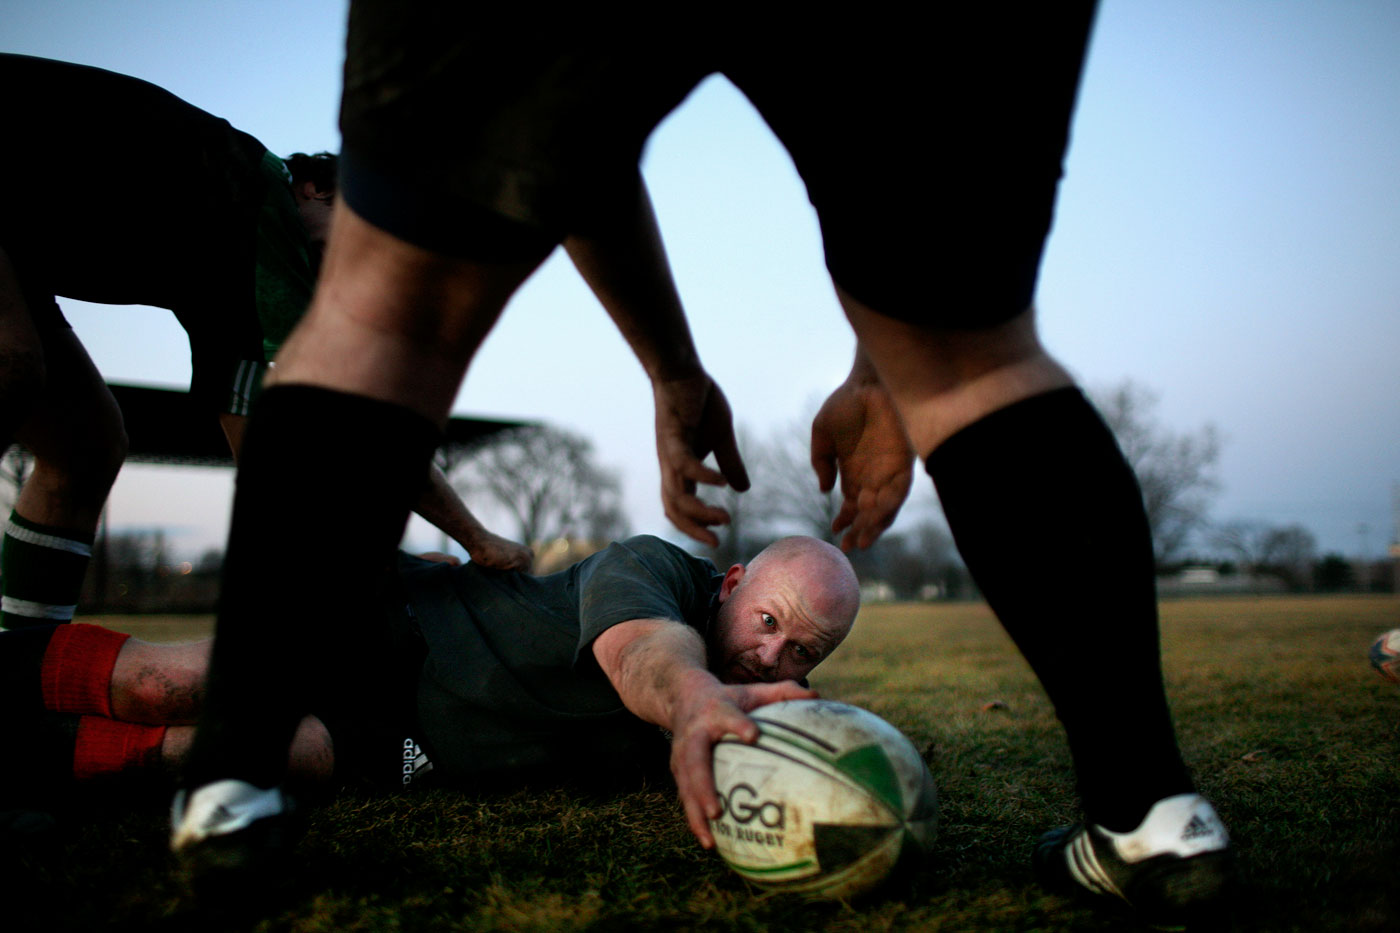 Rick Brainerd, 37, of Rocky Hill, is a member of the Hartford Wanderers rugby team - here he practices with the others at Colt Park in Hartford. The Wanderers were founded in the 1960's.